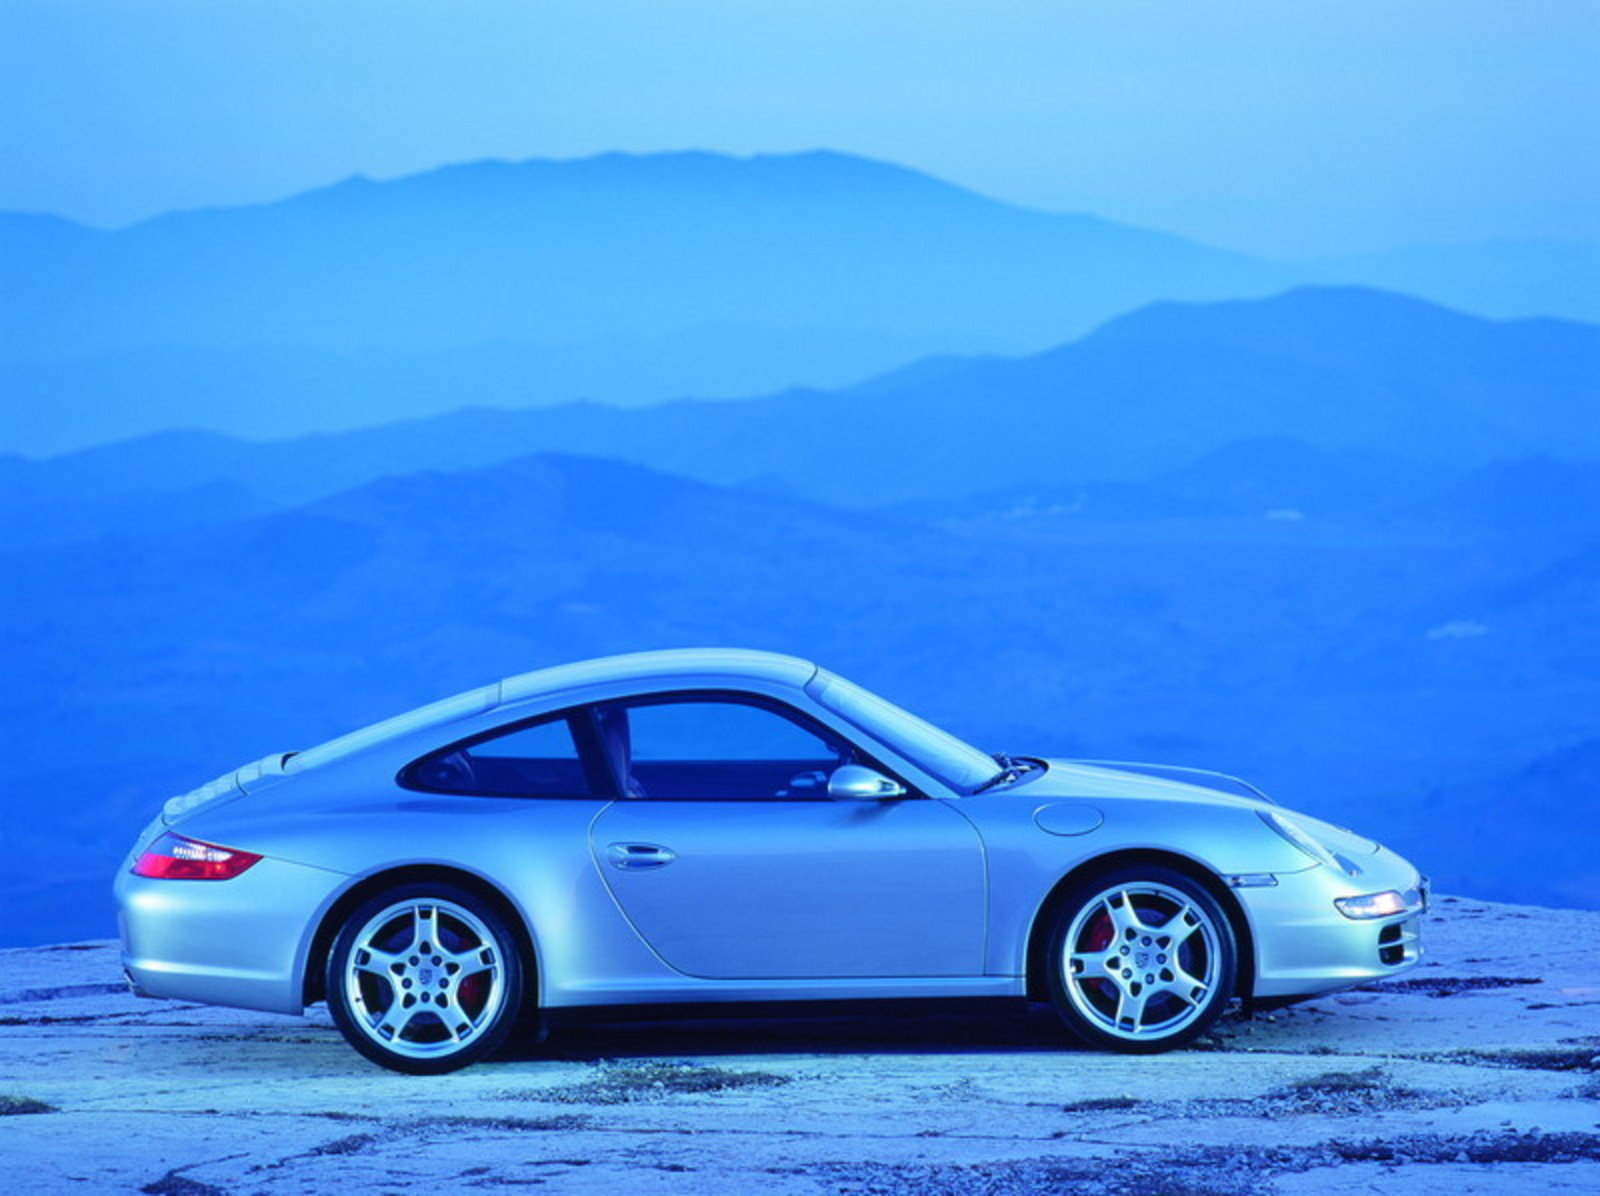 2005 porsche 911 carrera 4s 997 picture 84403 car. Black Bedroom Furniture Sets. Home Design Ideas